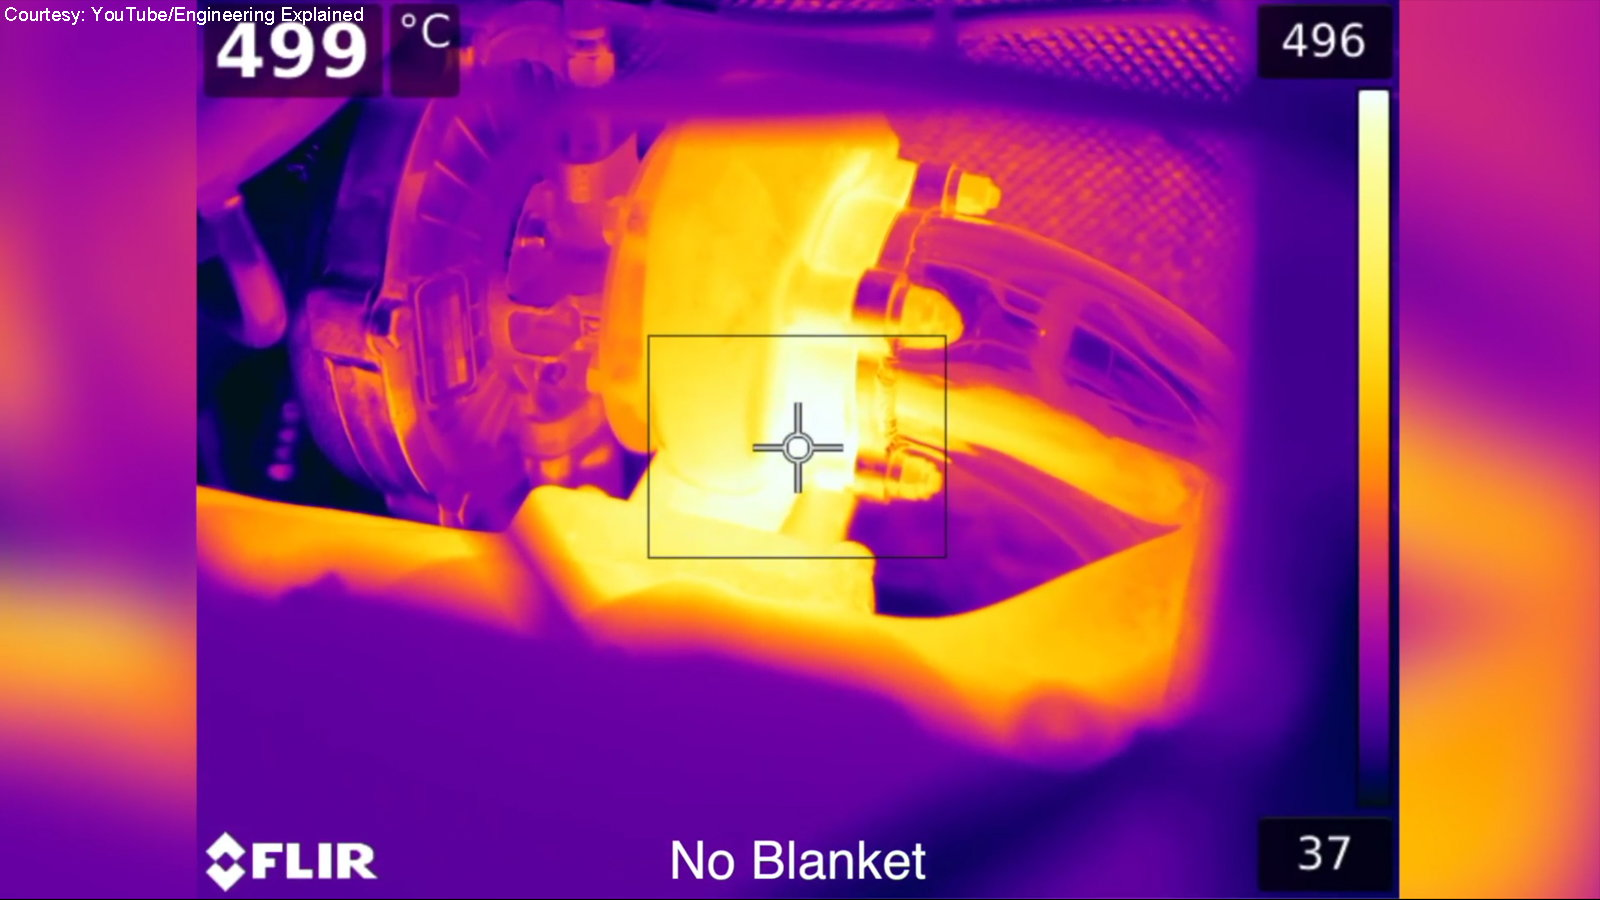 Do You Need a Turbo Blanket?